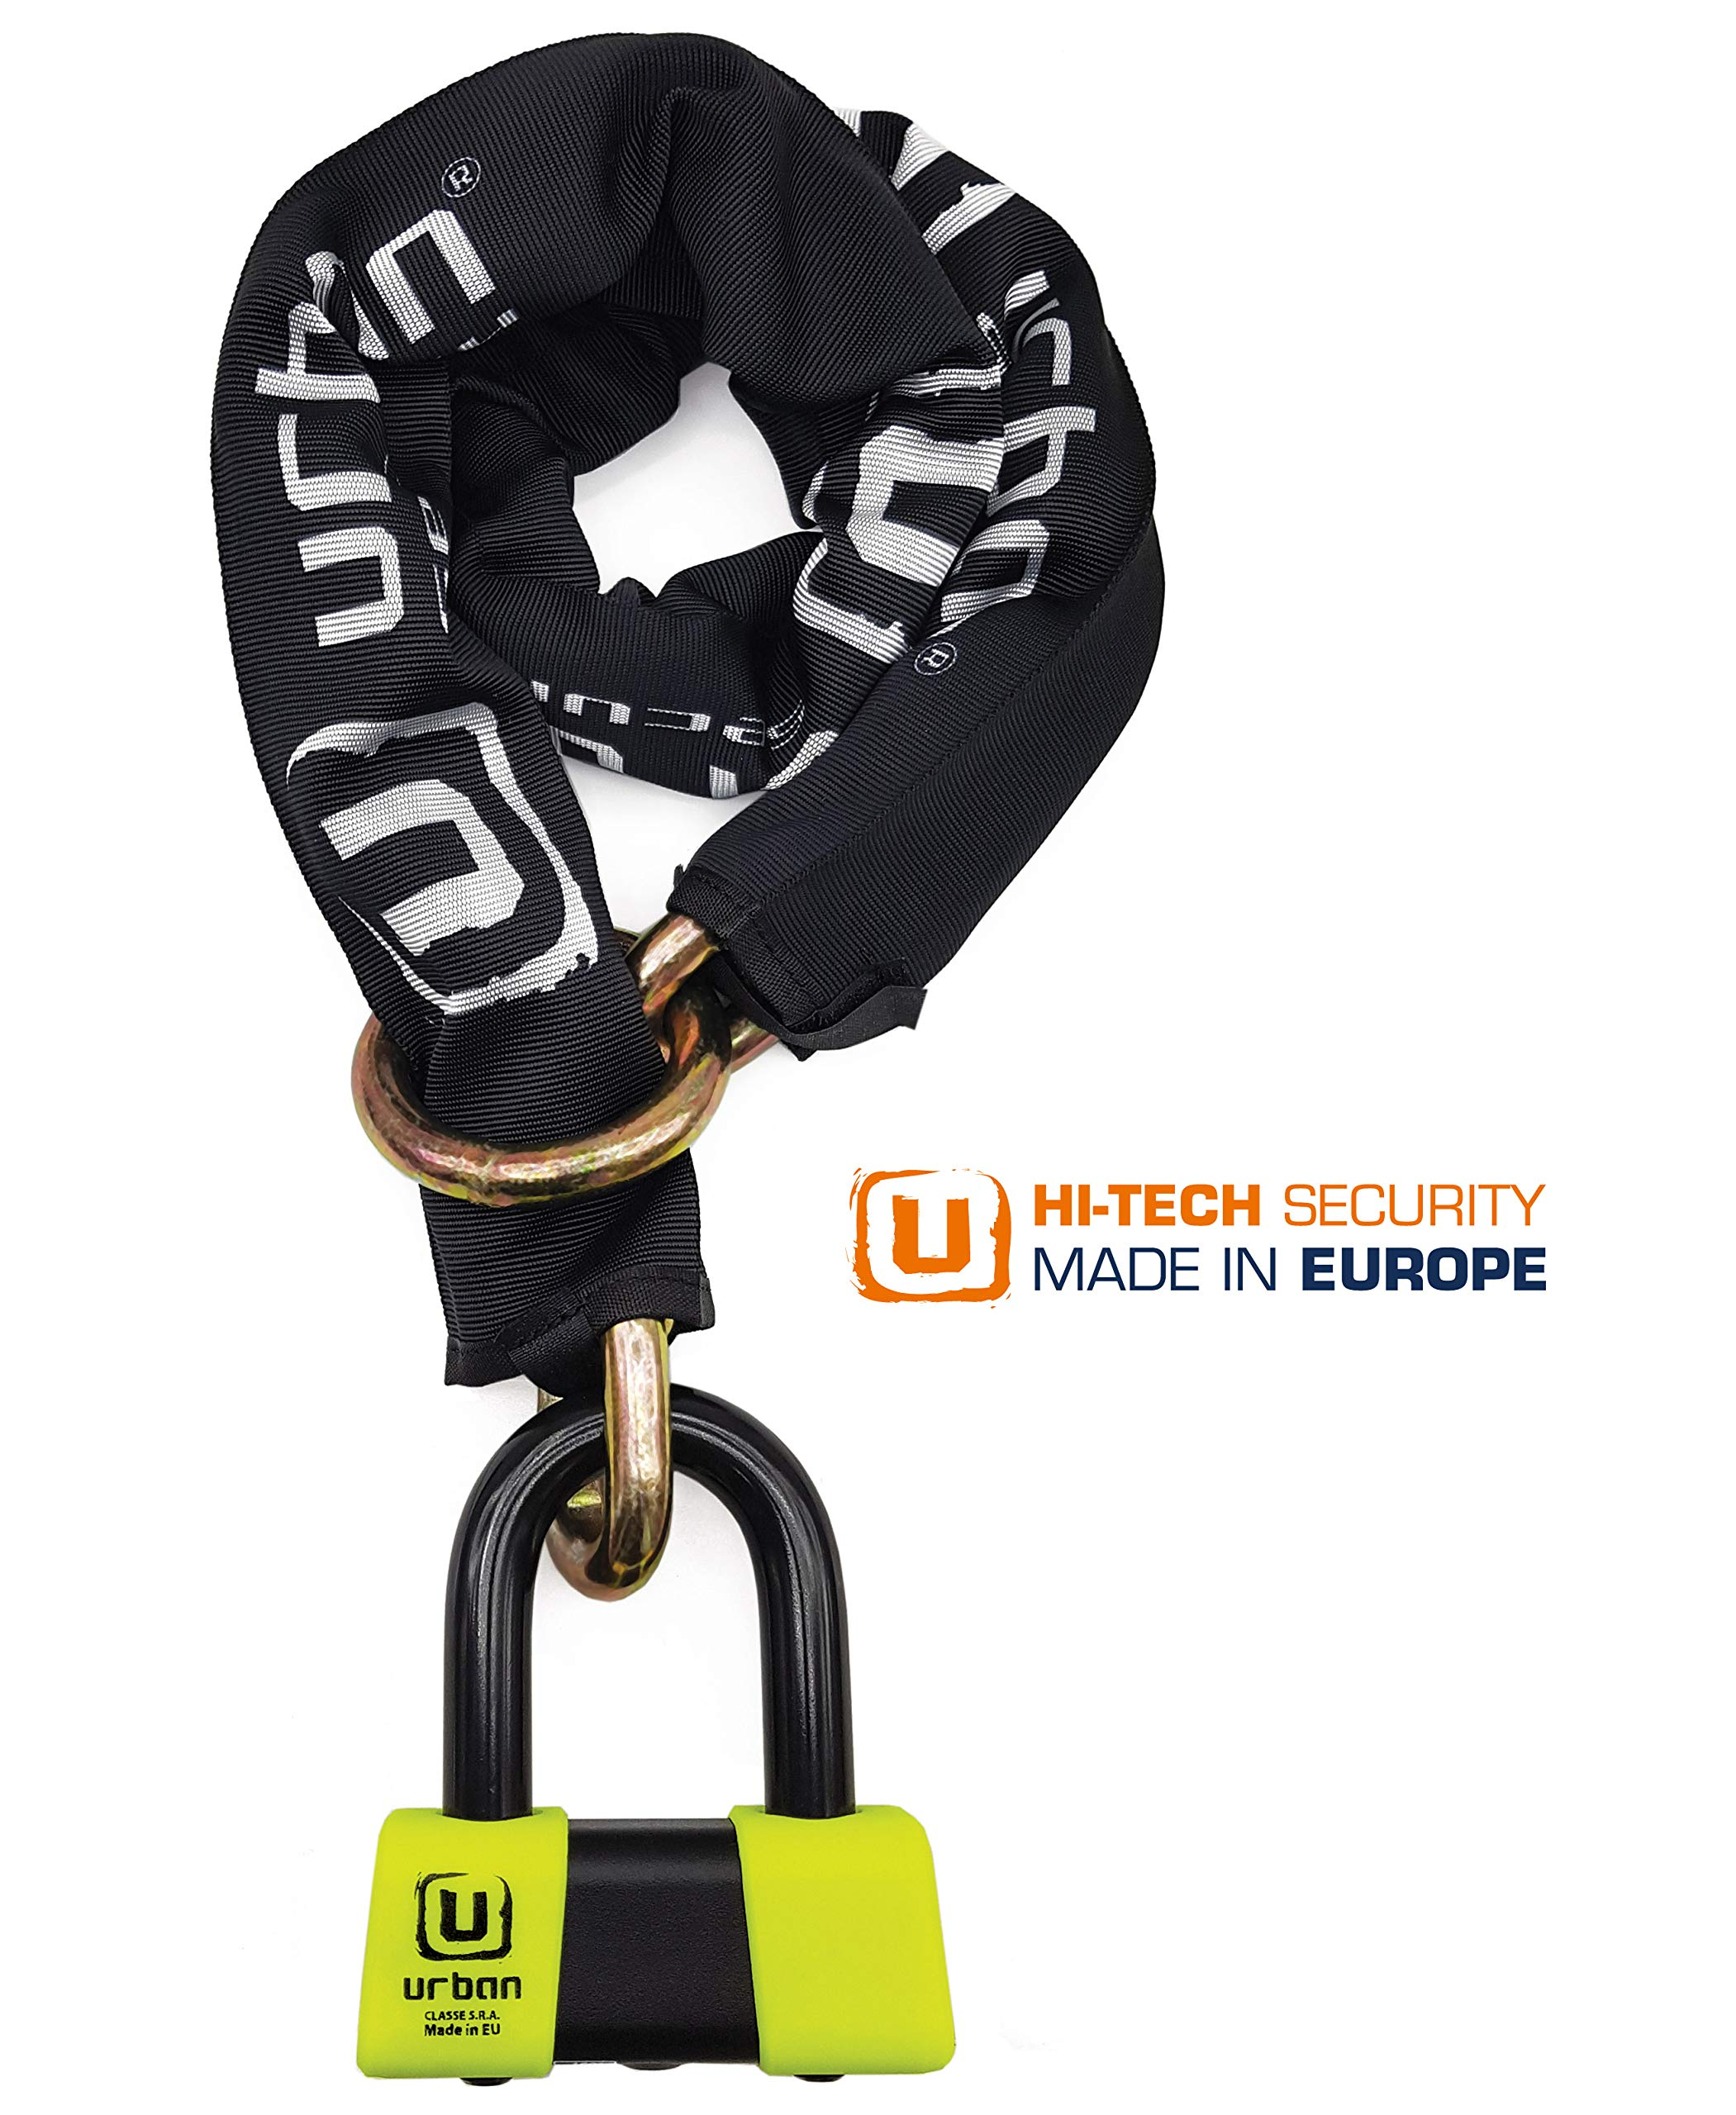 Urban Security UR73120L High Security Anti-Theft Chain Approved SRA, Ø13.5, 120cm, Made in EU